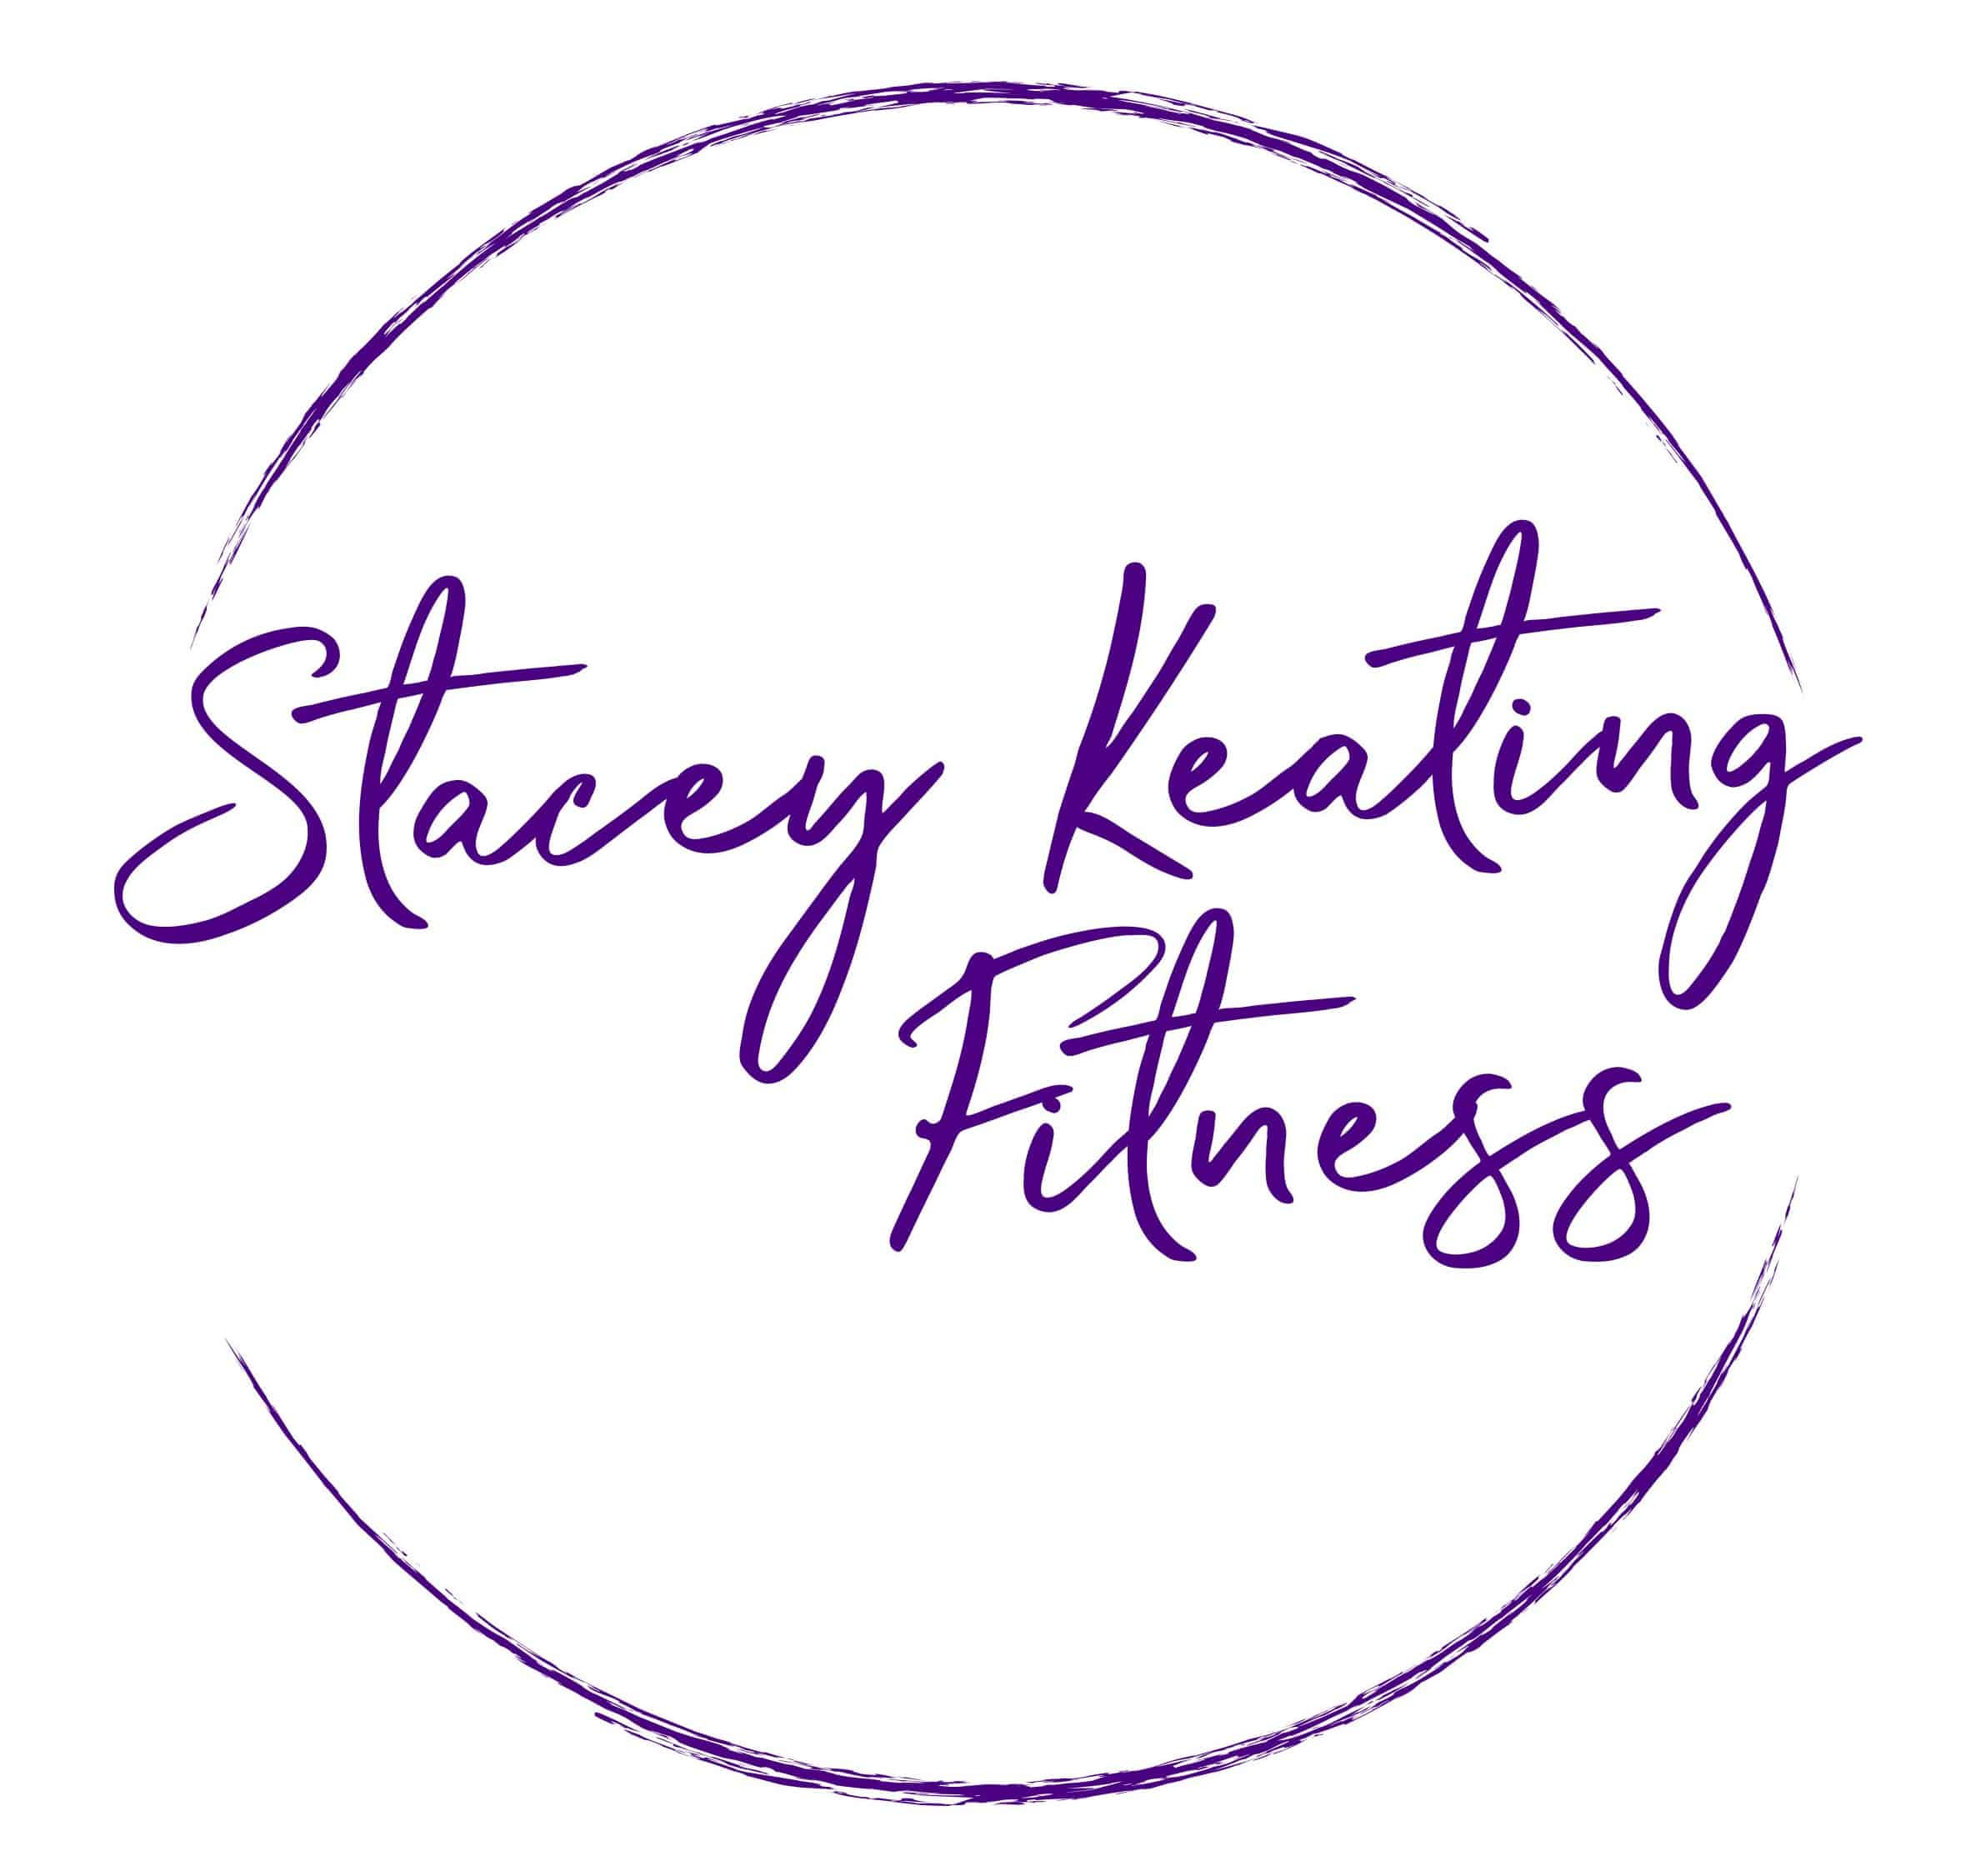 Stacey Keating Fitness